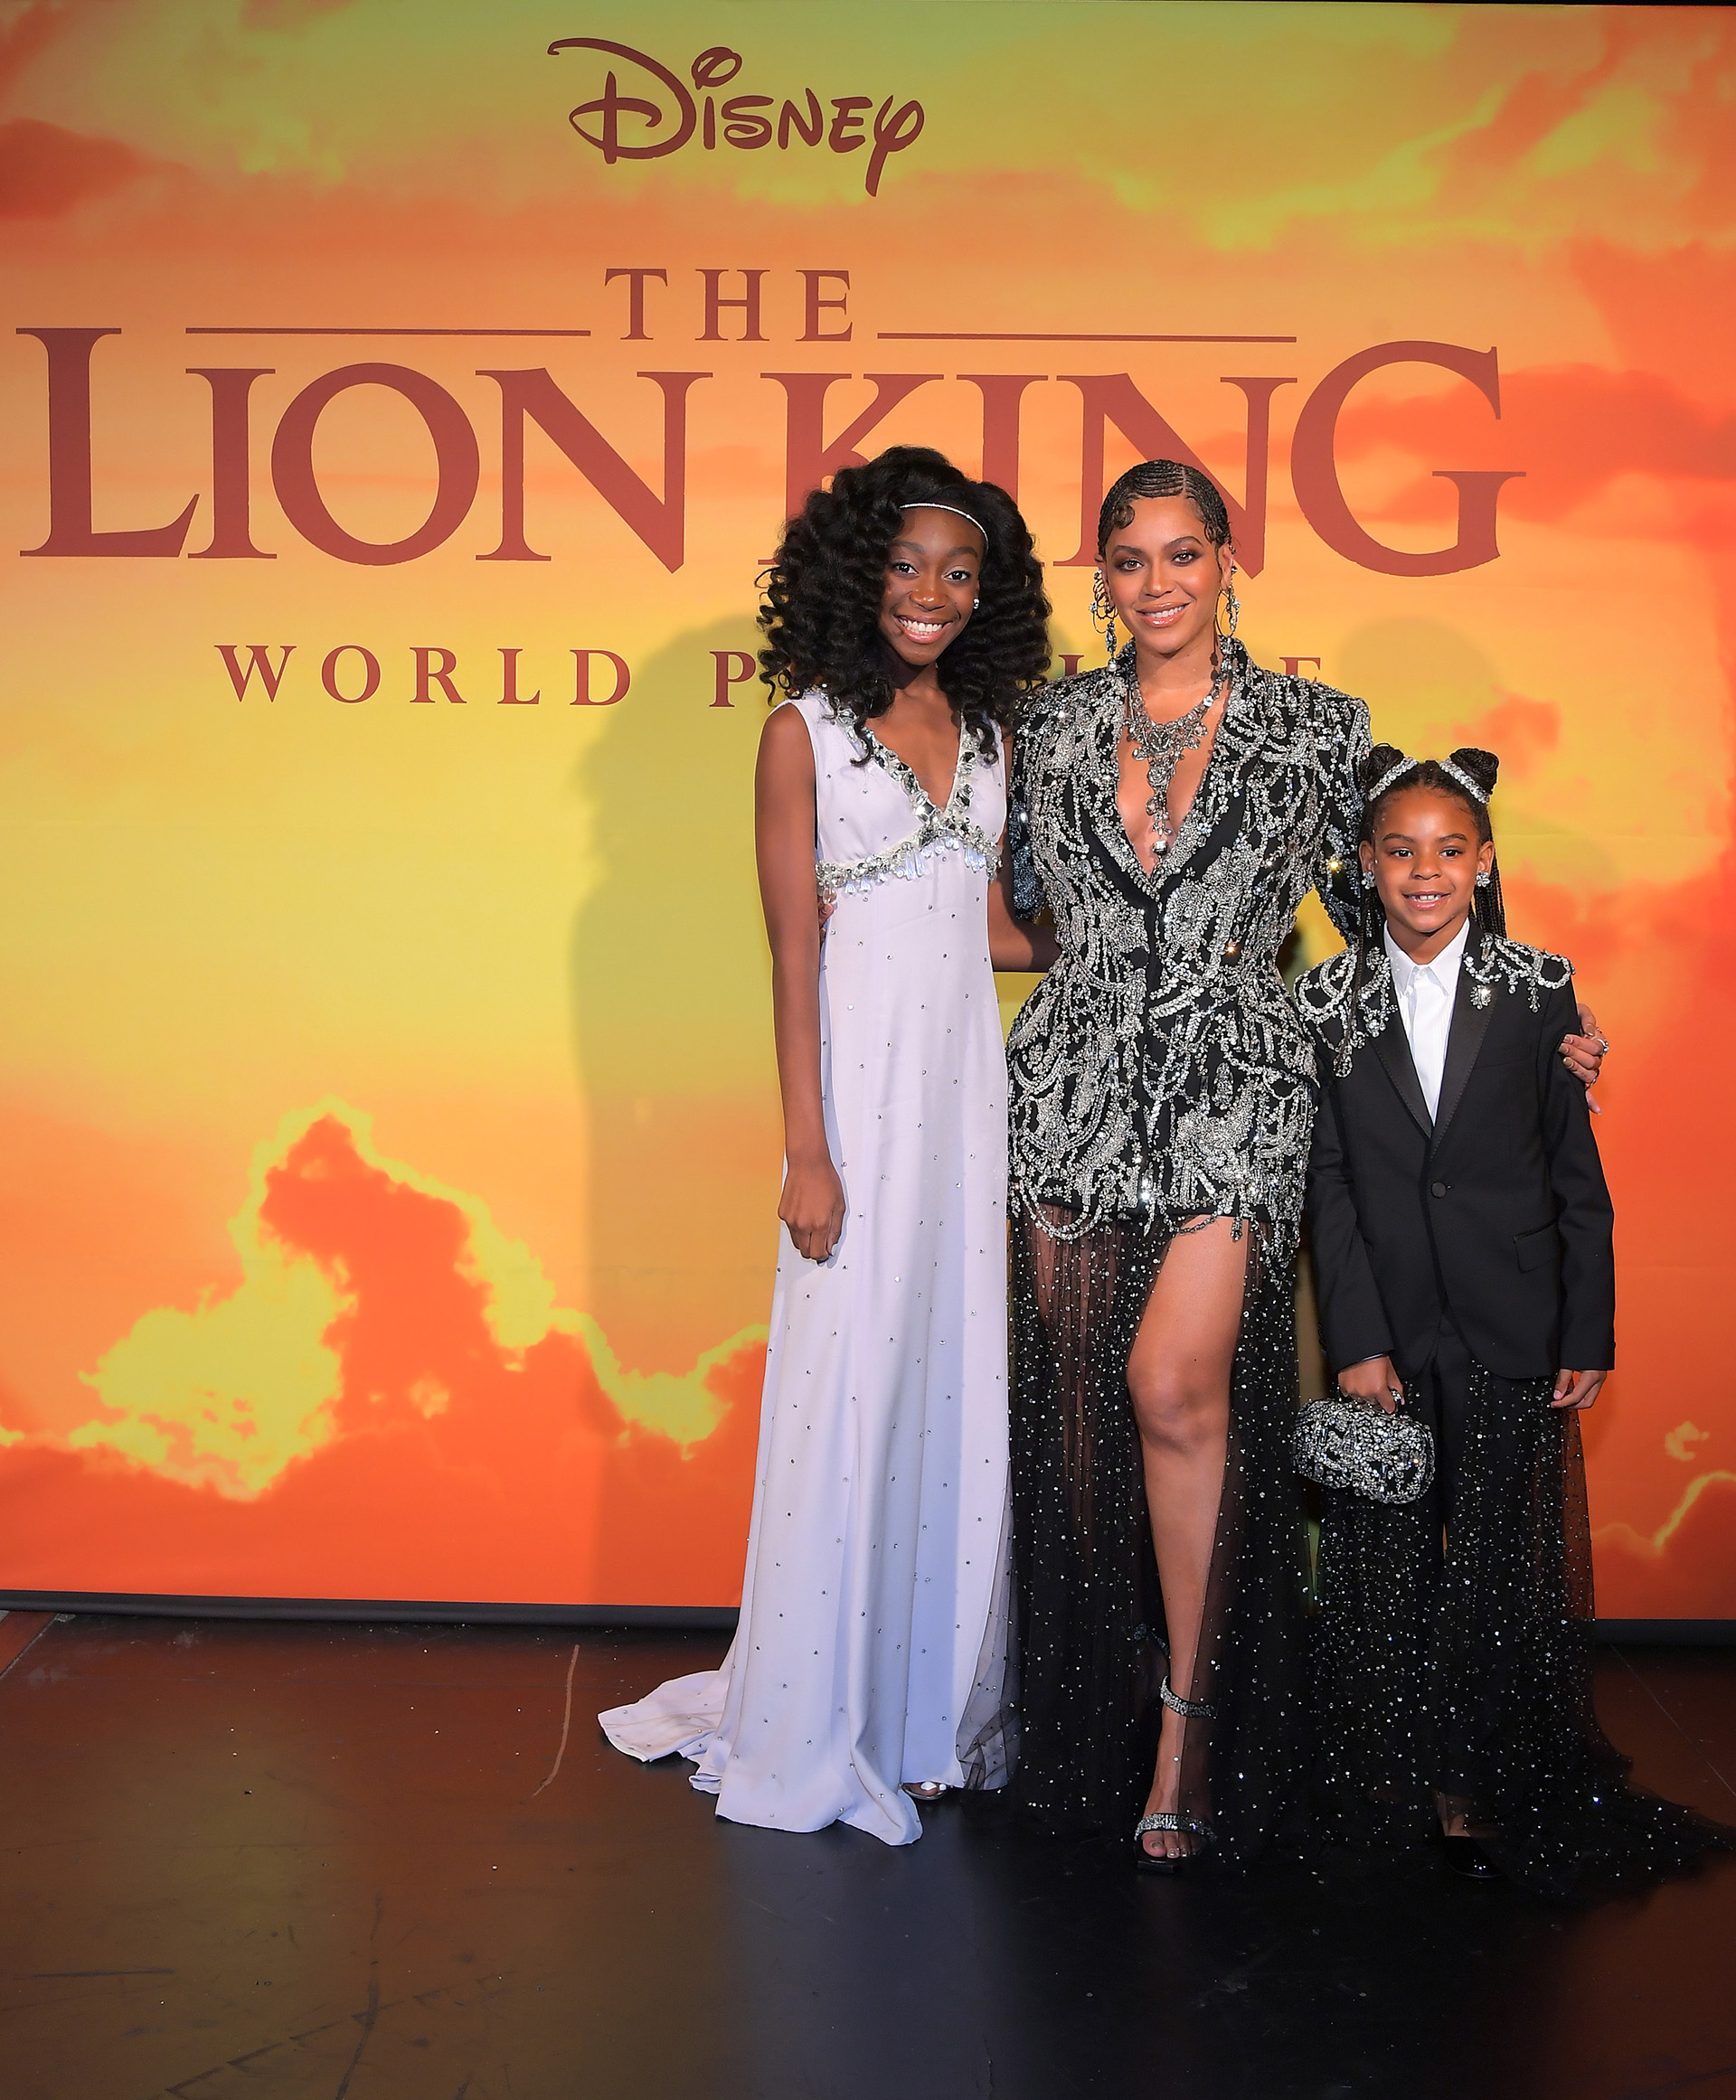 Shahadi Wright Joseph, Beyonce Knowles-Carter, y Blue Ivy Carter